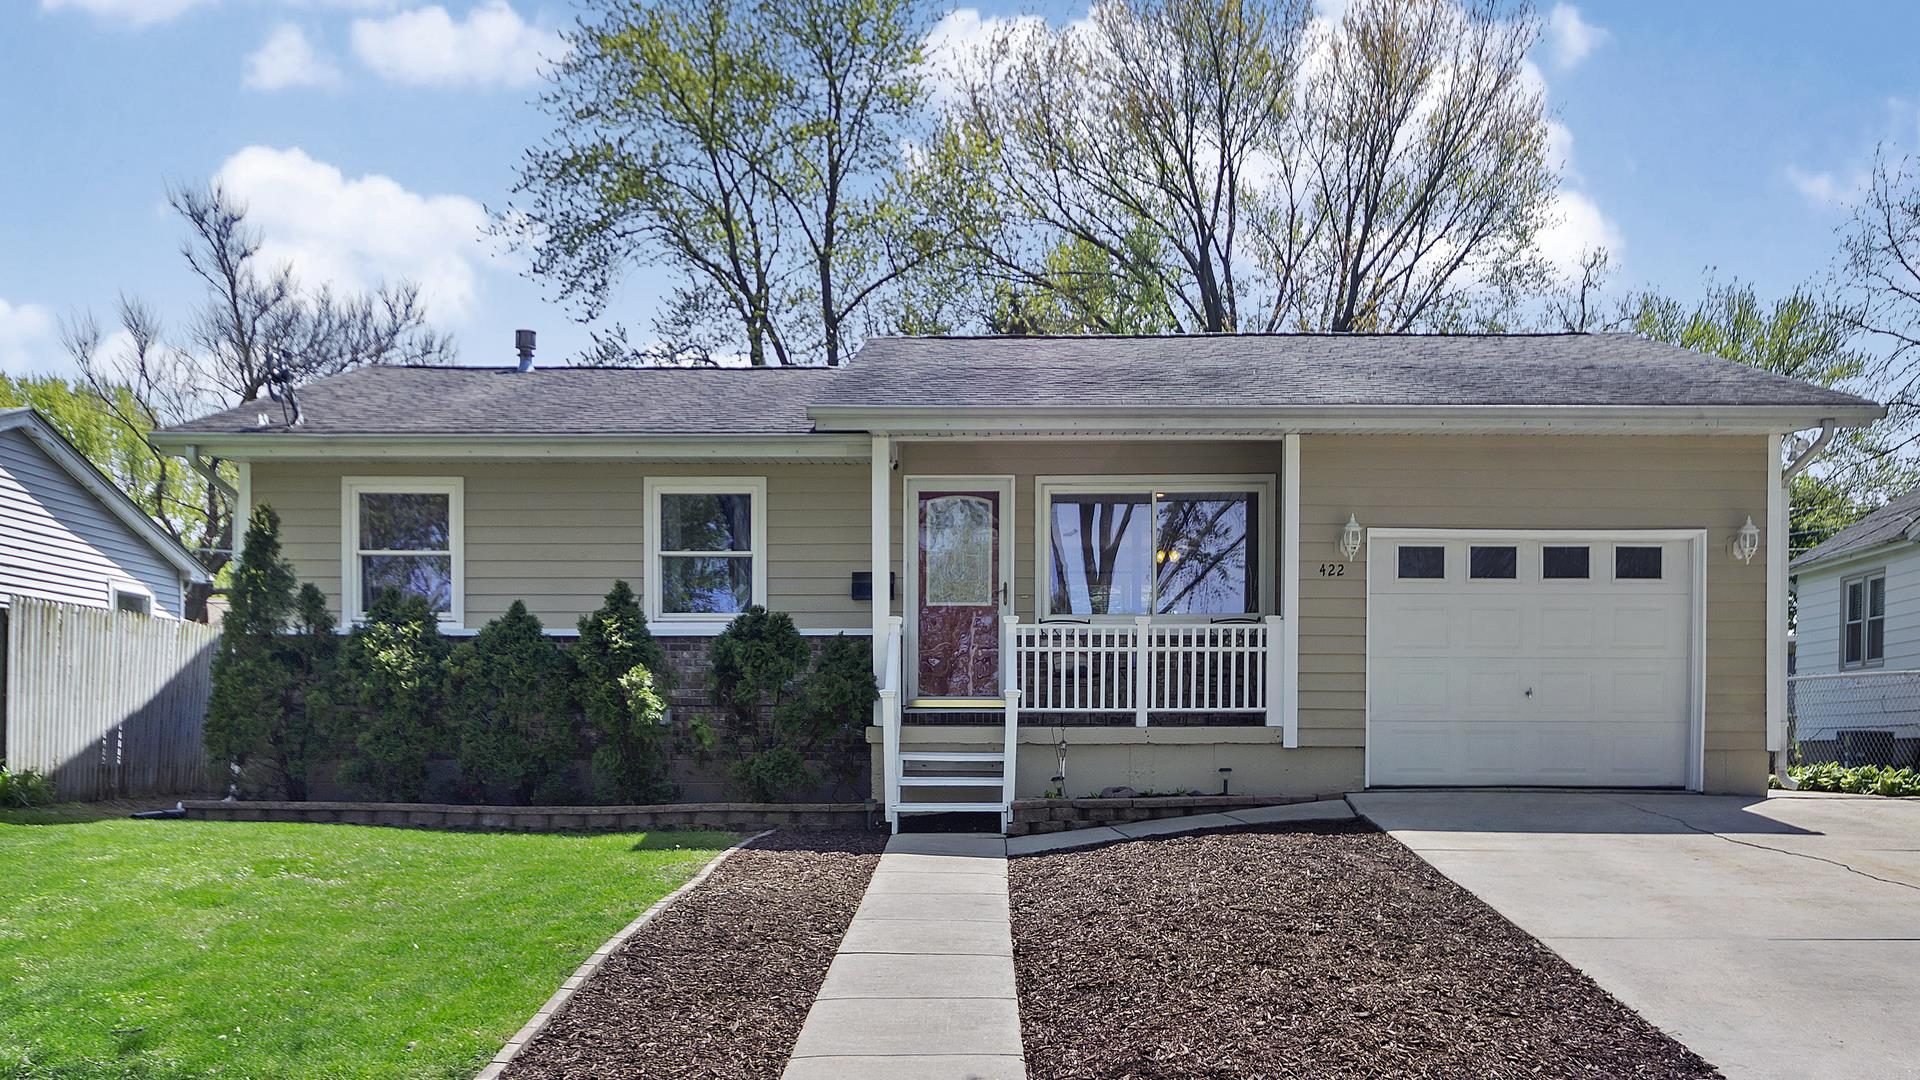 422 E Stimmel Street, West Chicago, IL 60185 - #: 10716288